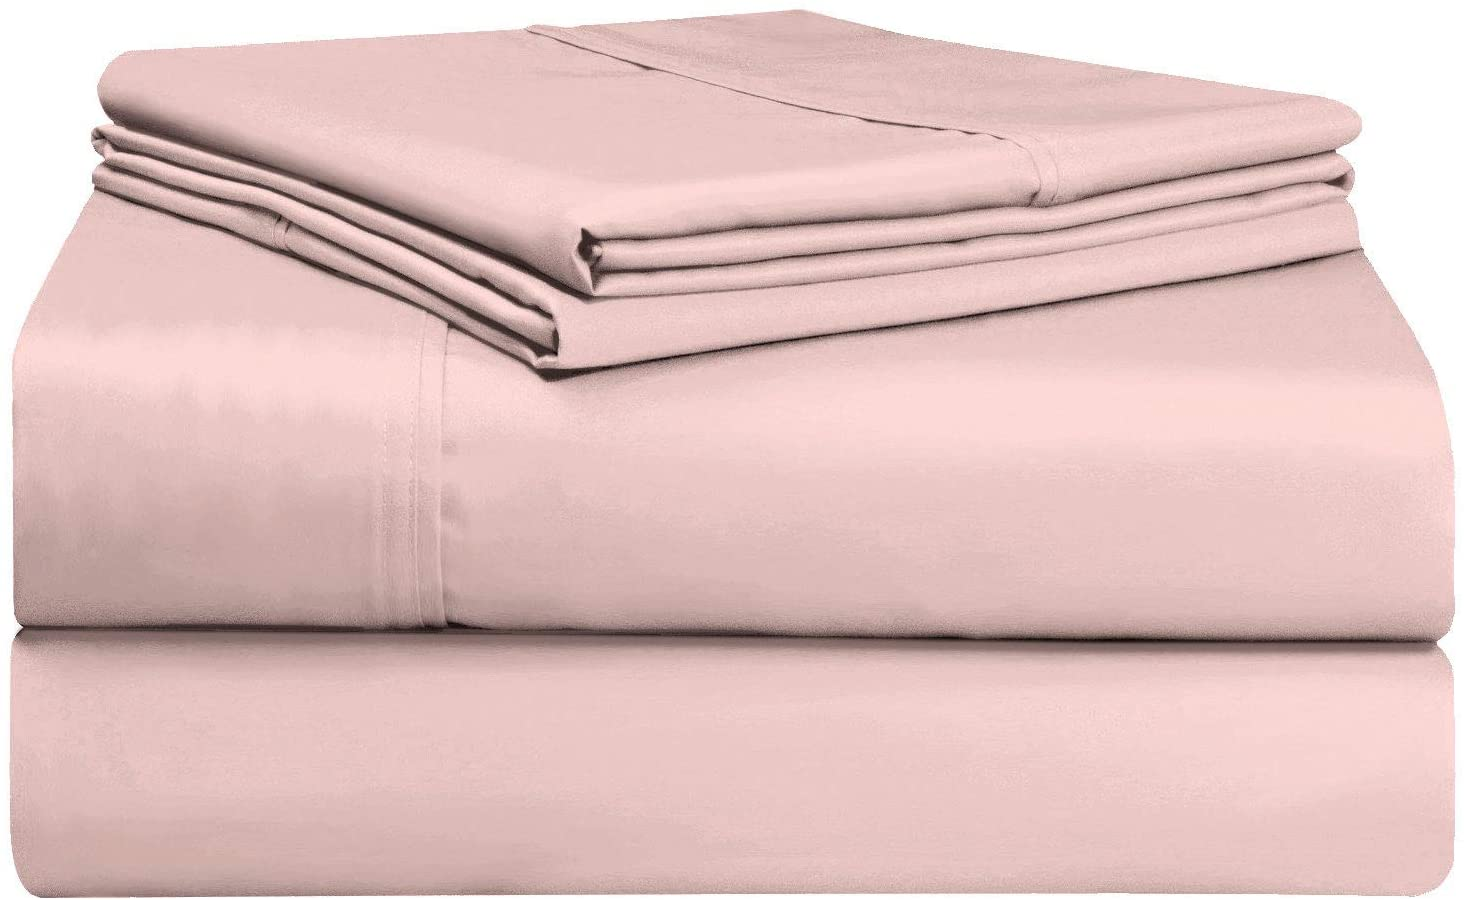 Pizuna 400 Thread Count Cotton Queen Sheets Set Rose Pink, 100% Long Staple Cotton Soft Sateen Bed Sheets with Stylish 4 inch Hem, fit Upto 15 inch Deep Pocket (Rose Pink 100% Cotton Queen-Size Sheet)